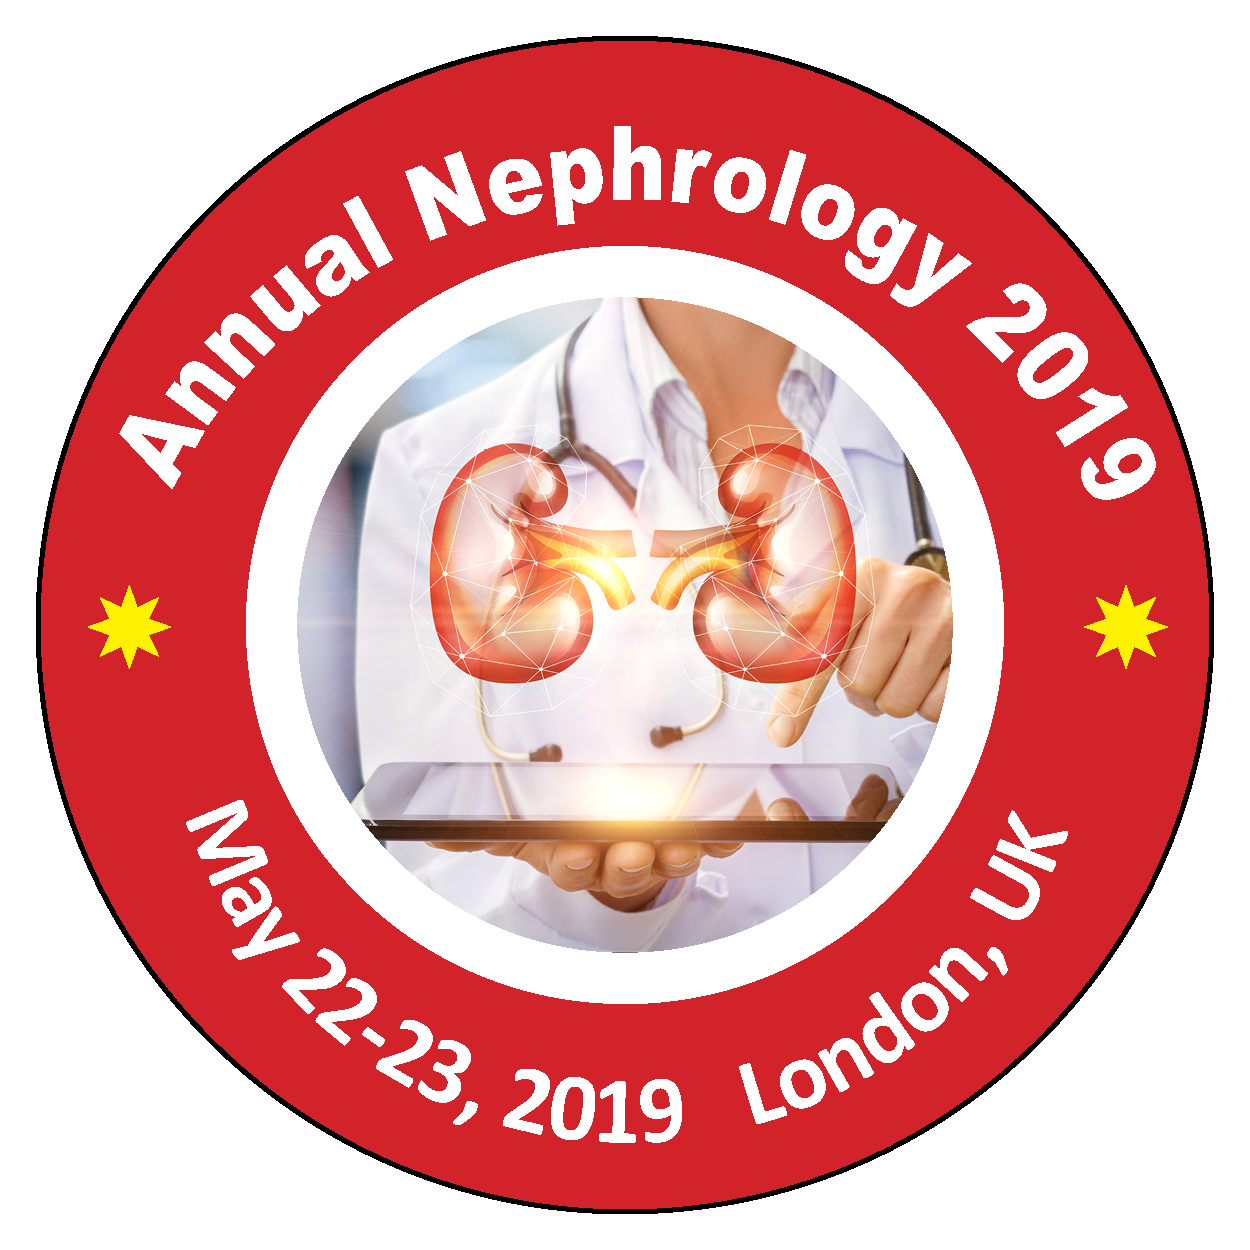 images/event/annual nephrology 2019 logo.png